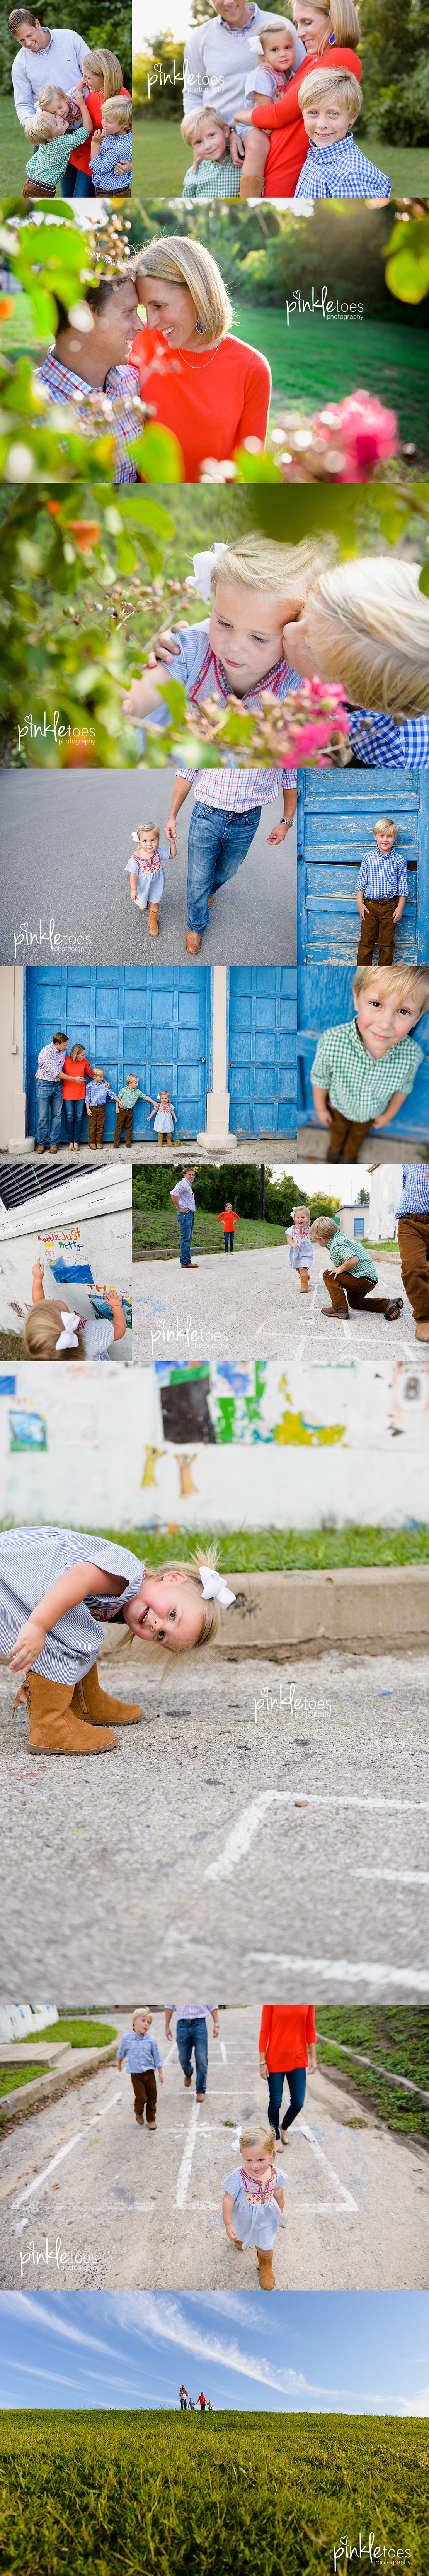 kk-austin-family-lifestyle-kids-photographer-pinkle-toes